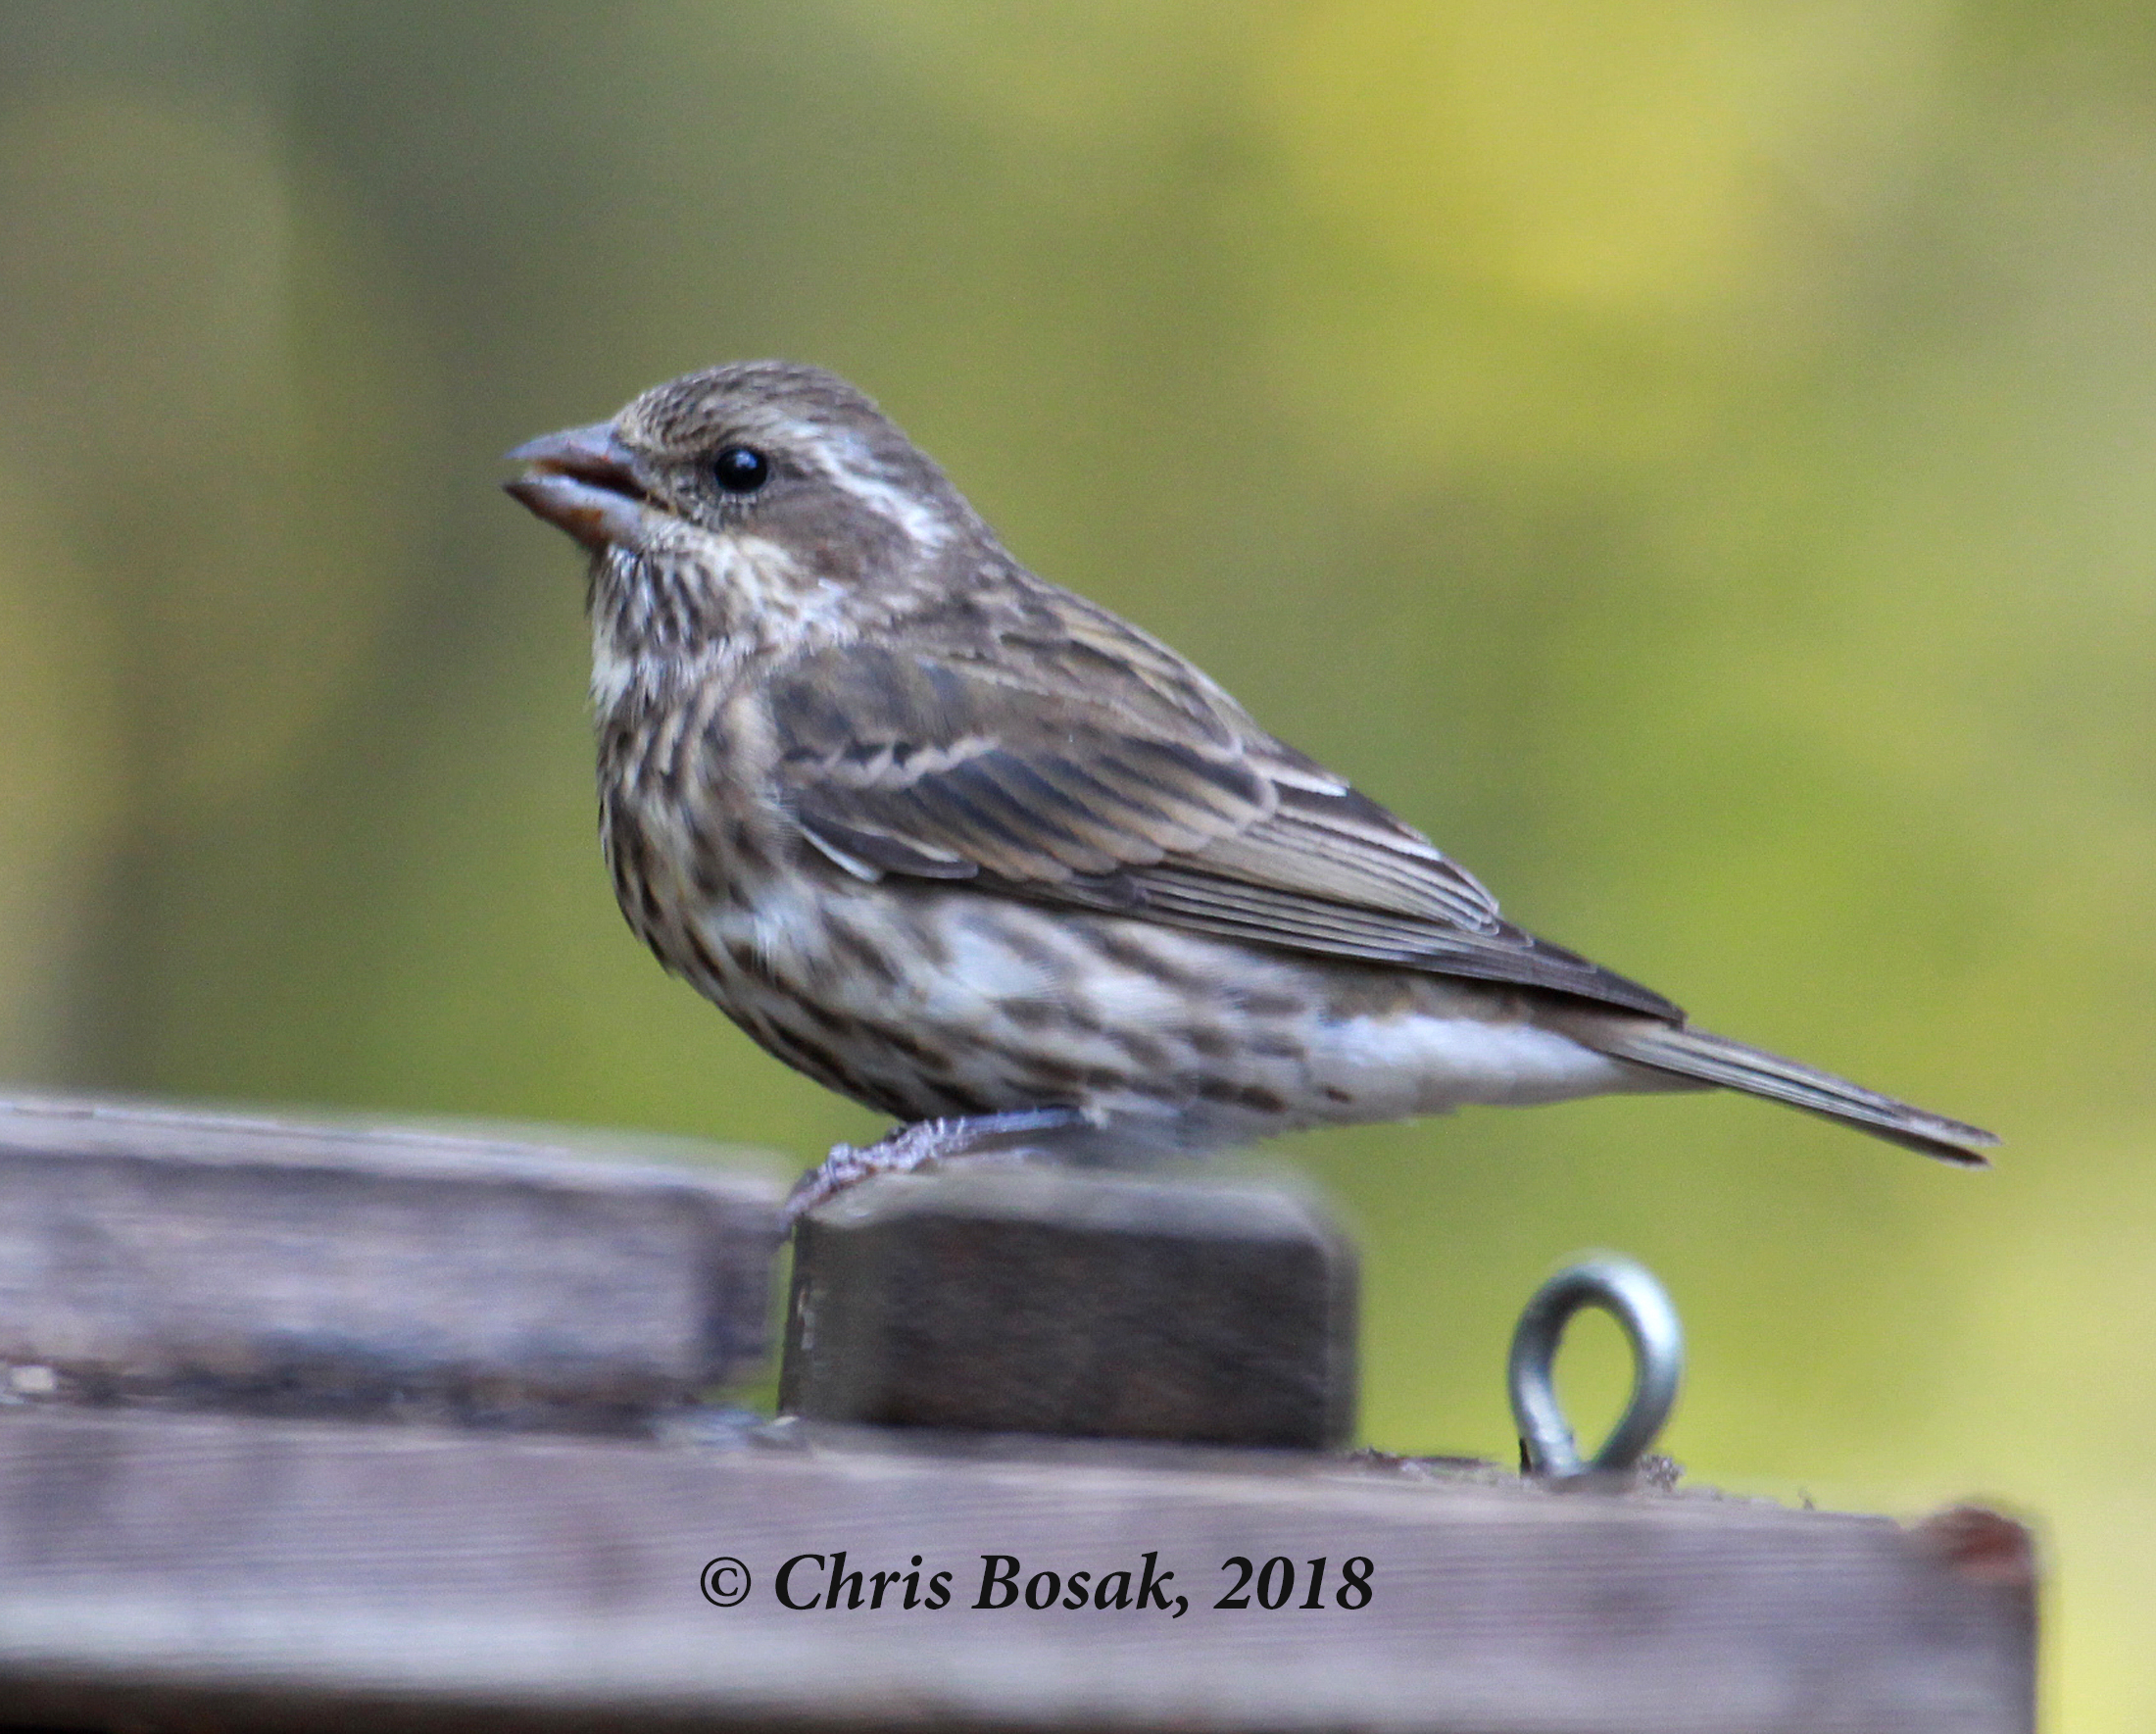 Photo by Chris Bosak A purple finch eats seeds at a feeder in New England, Nov. 2018.